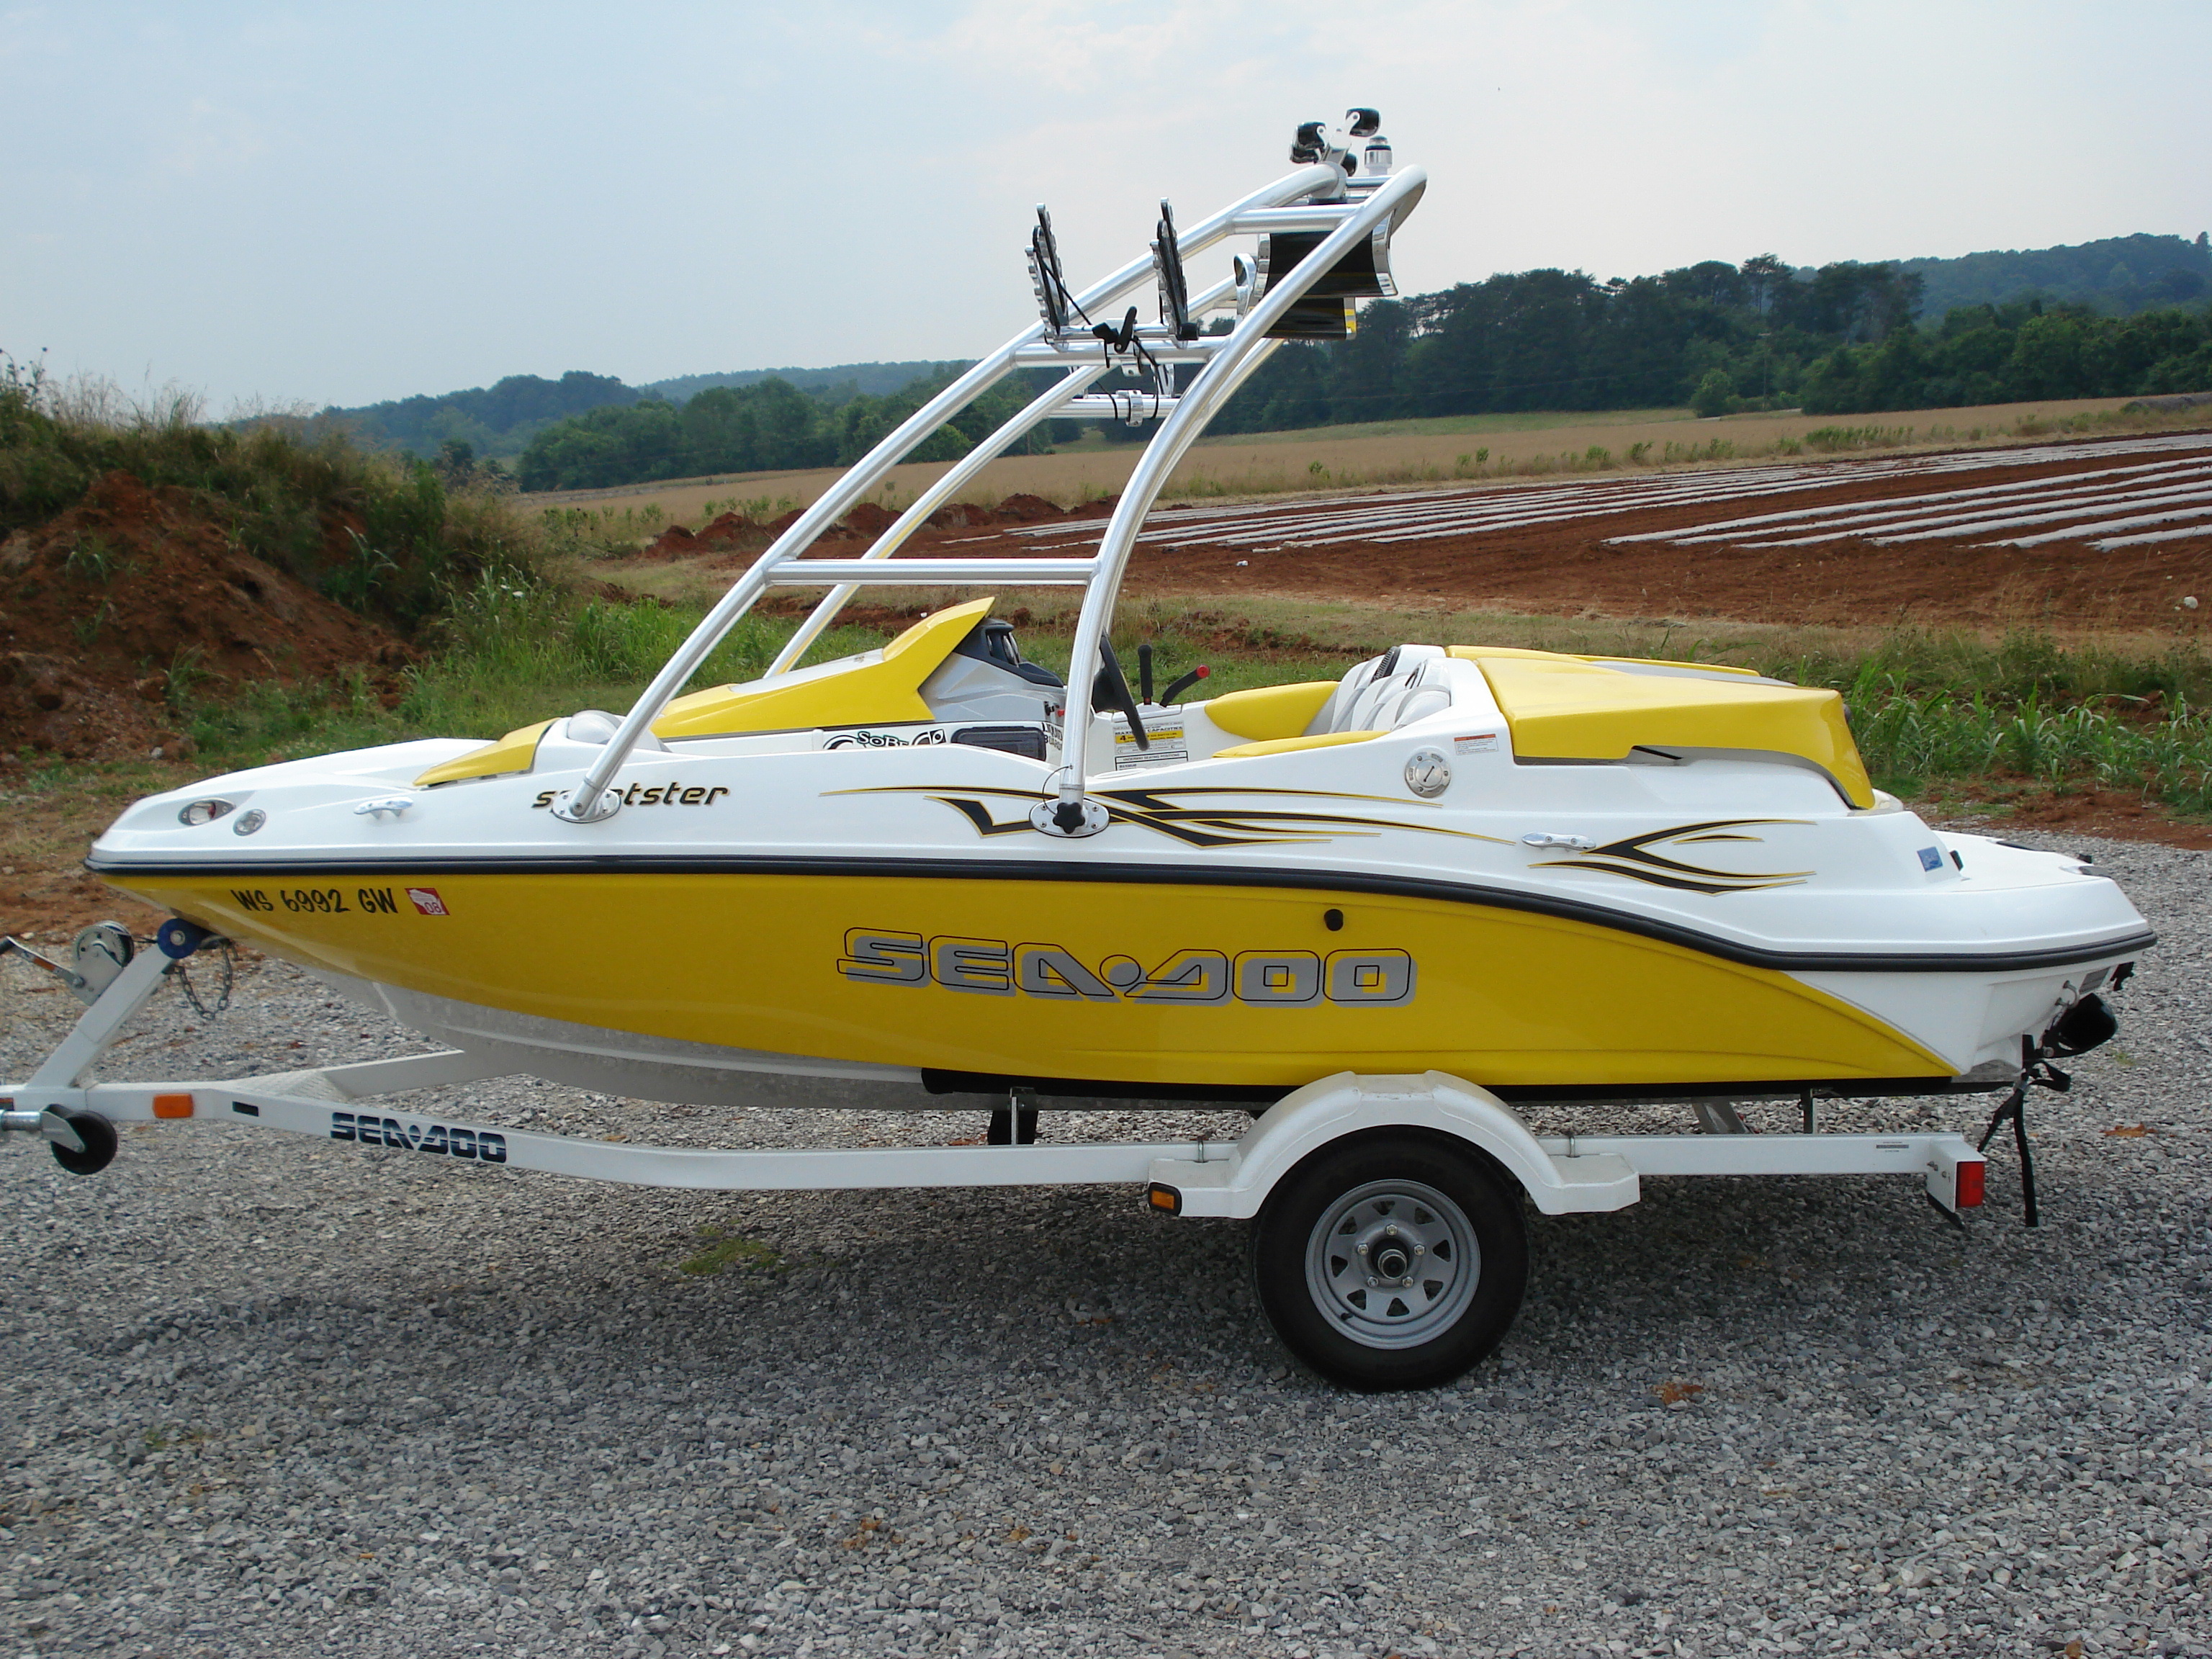 main view of 2005 sea doo sportster with new dimension towers